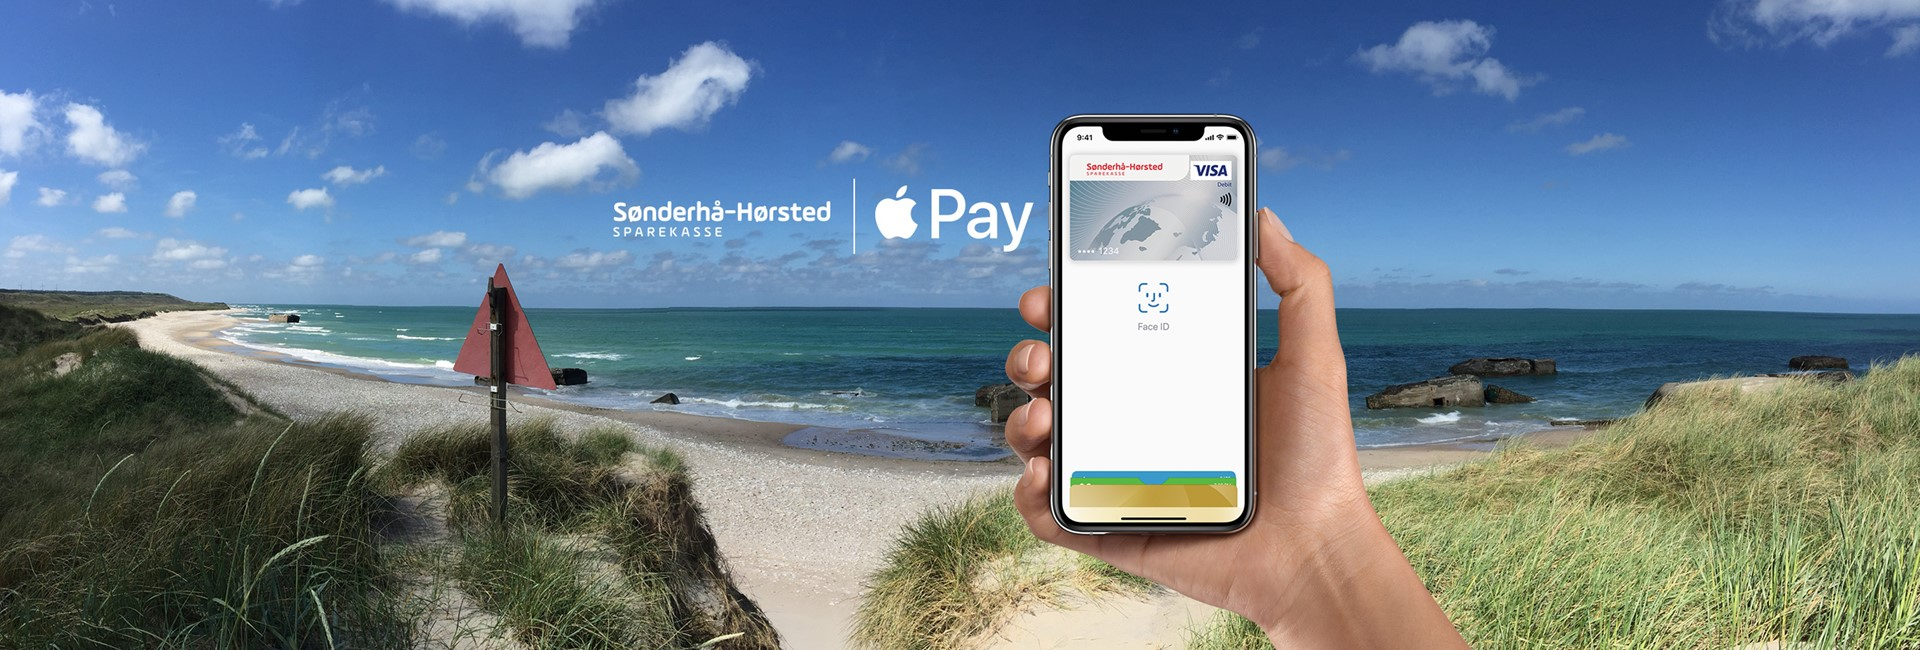 soenderhaa-hoersted-sparekasse-apple-pay-frontpage.jpg